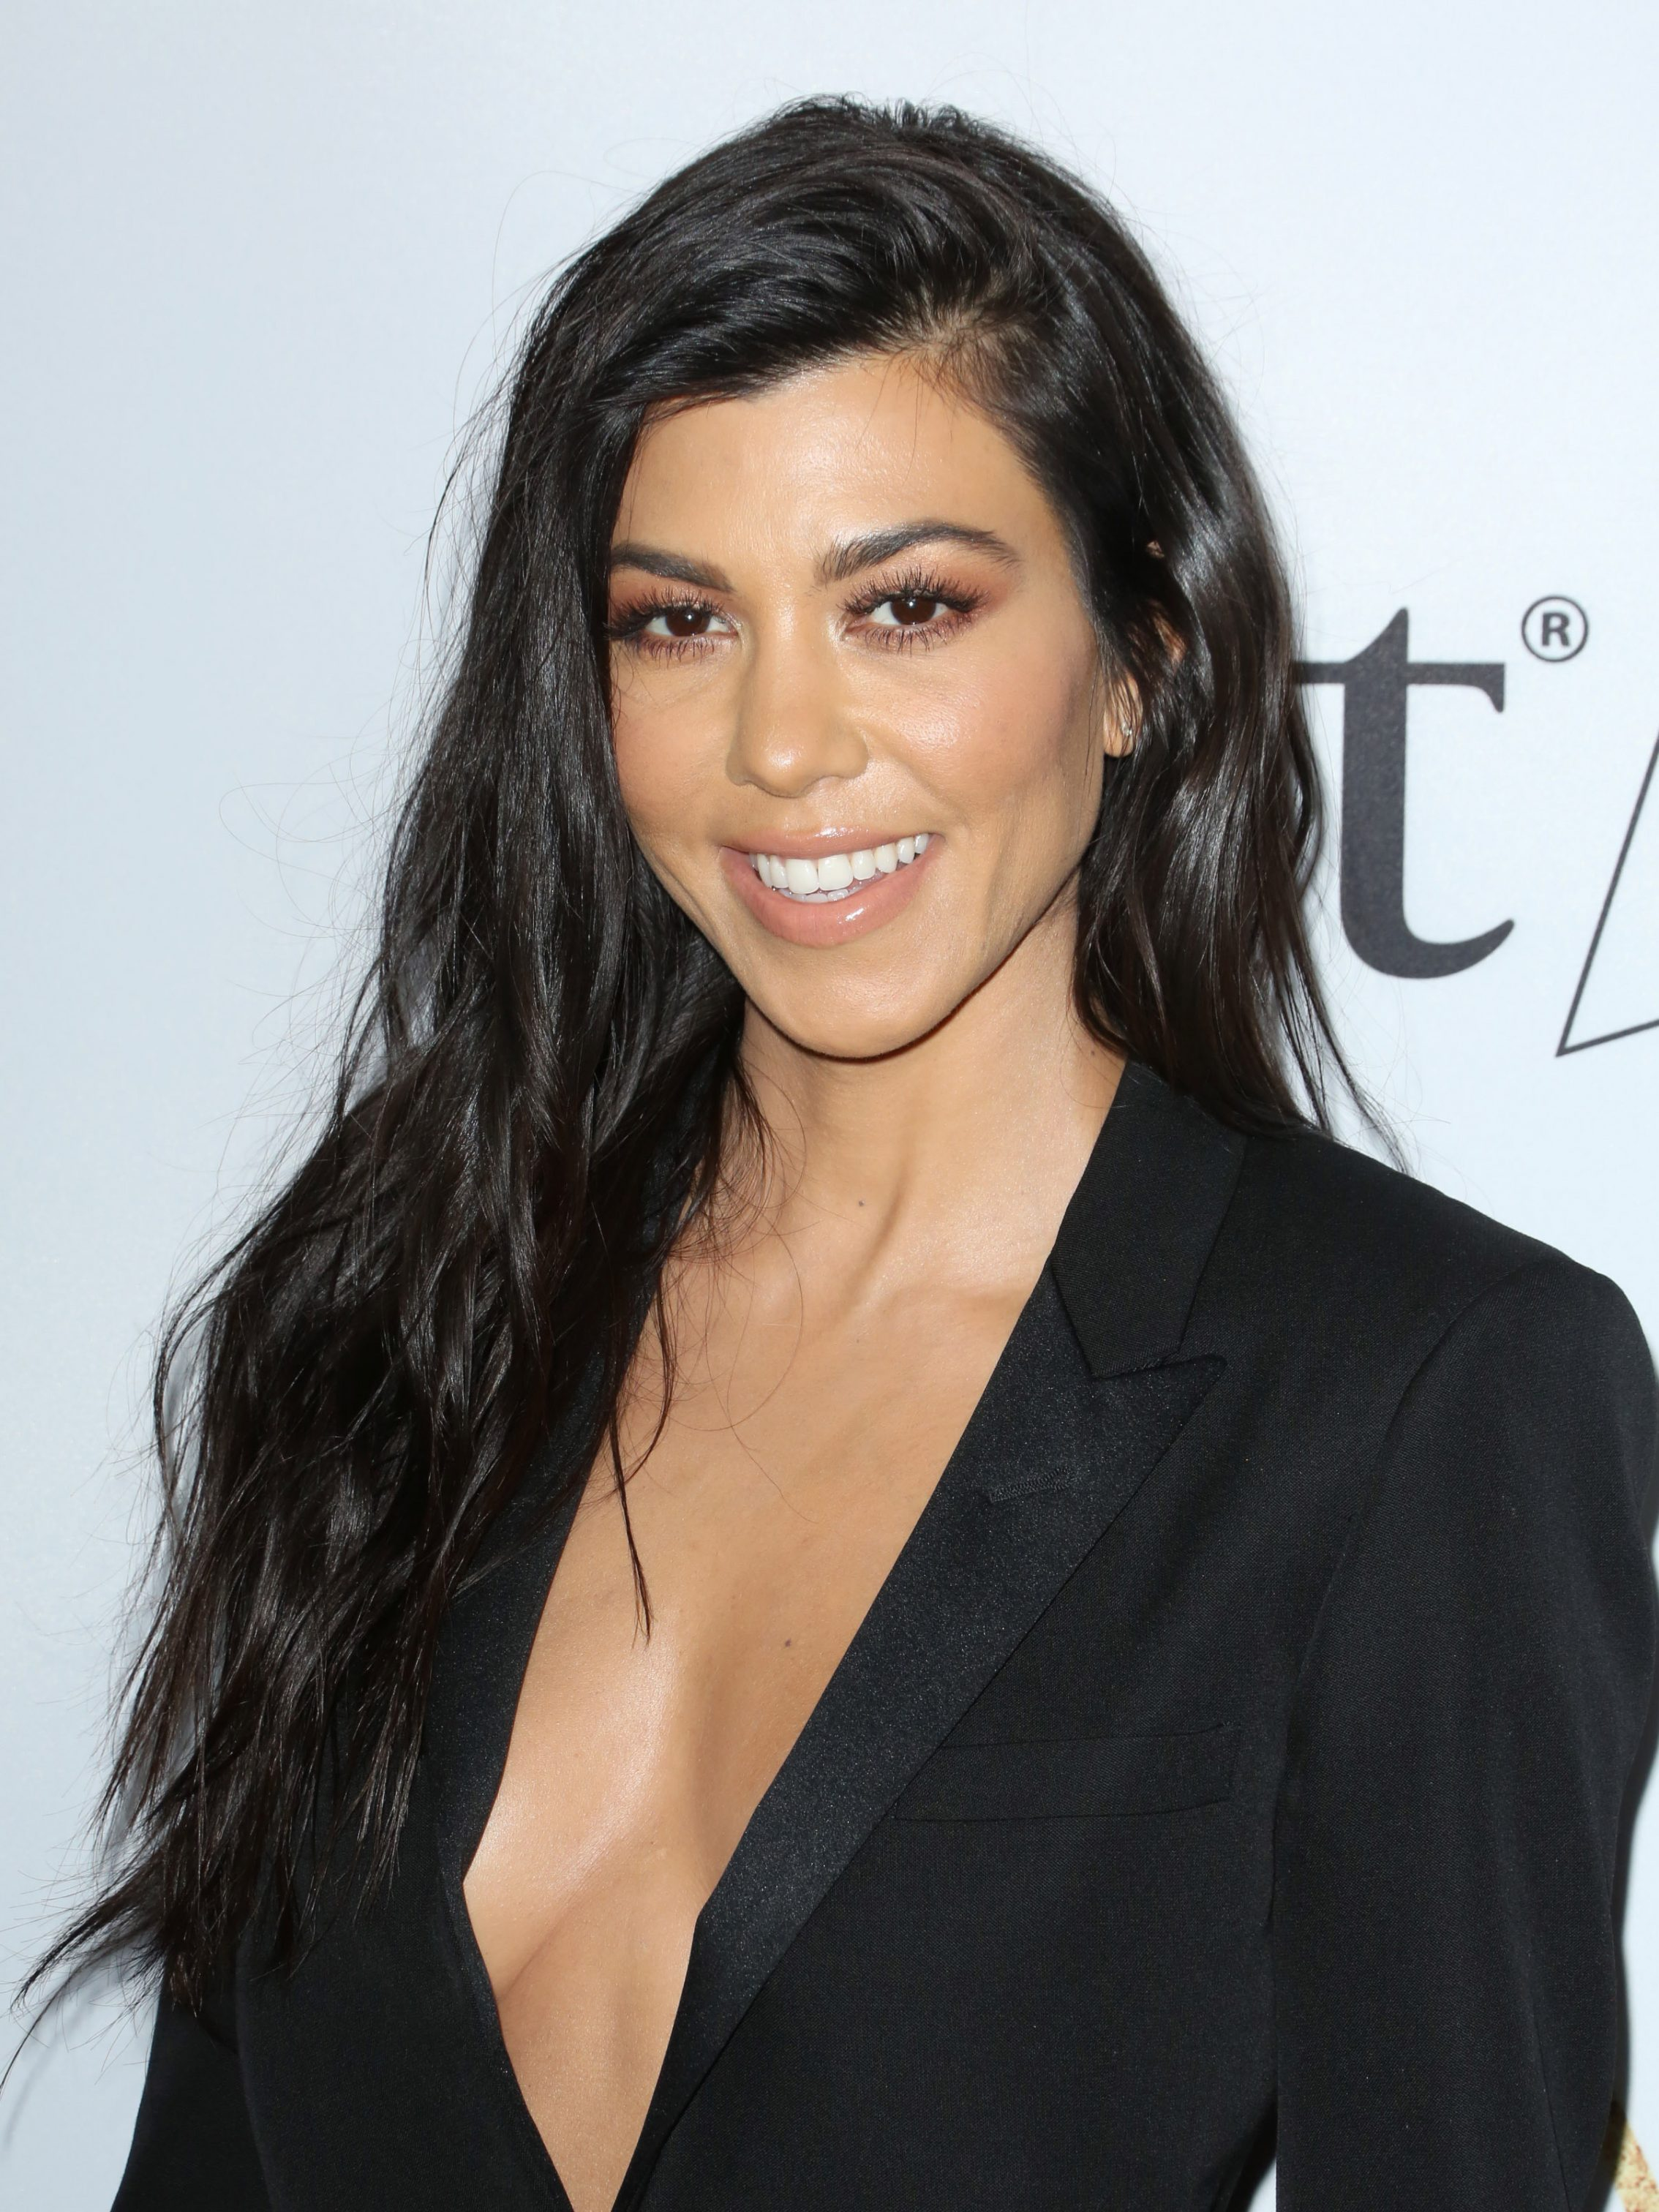 Kourtney Kardashian And Kylie Makeup: Kourtney Kardashian Hot & Spicy Bikini Pictures, Hot